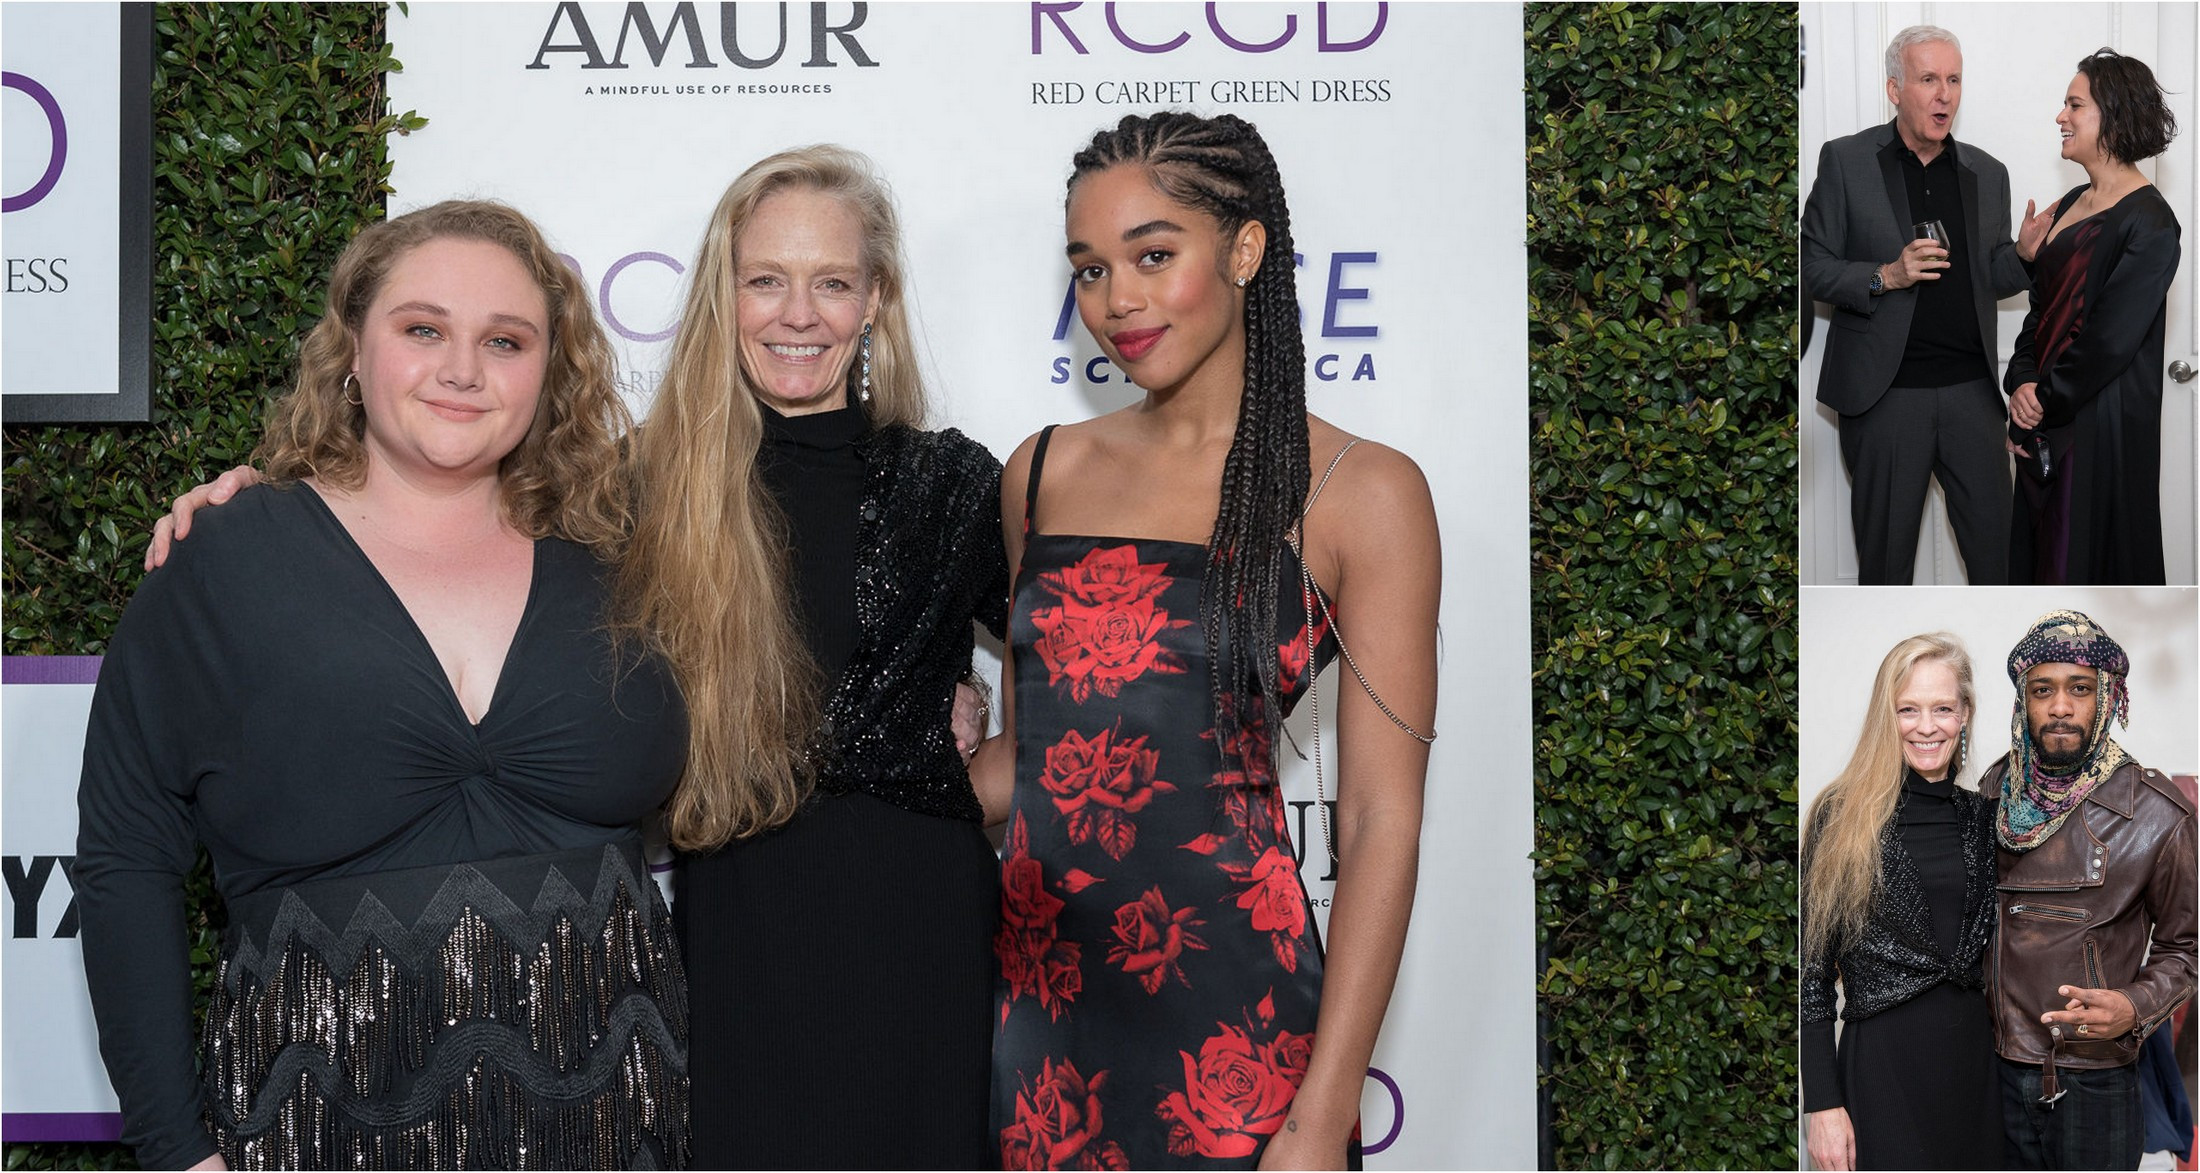 James Cameron, Laura Harrier, Danielle Macdonald, LaKeith Stanfield, Michelle Rodriguez and More Celebrate Red Carpet Green Dress 10 Yr Anniversary